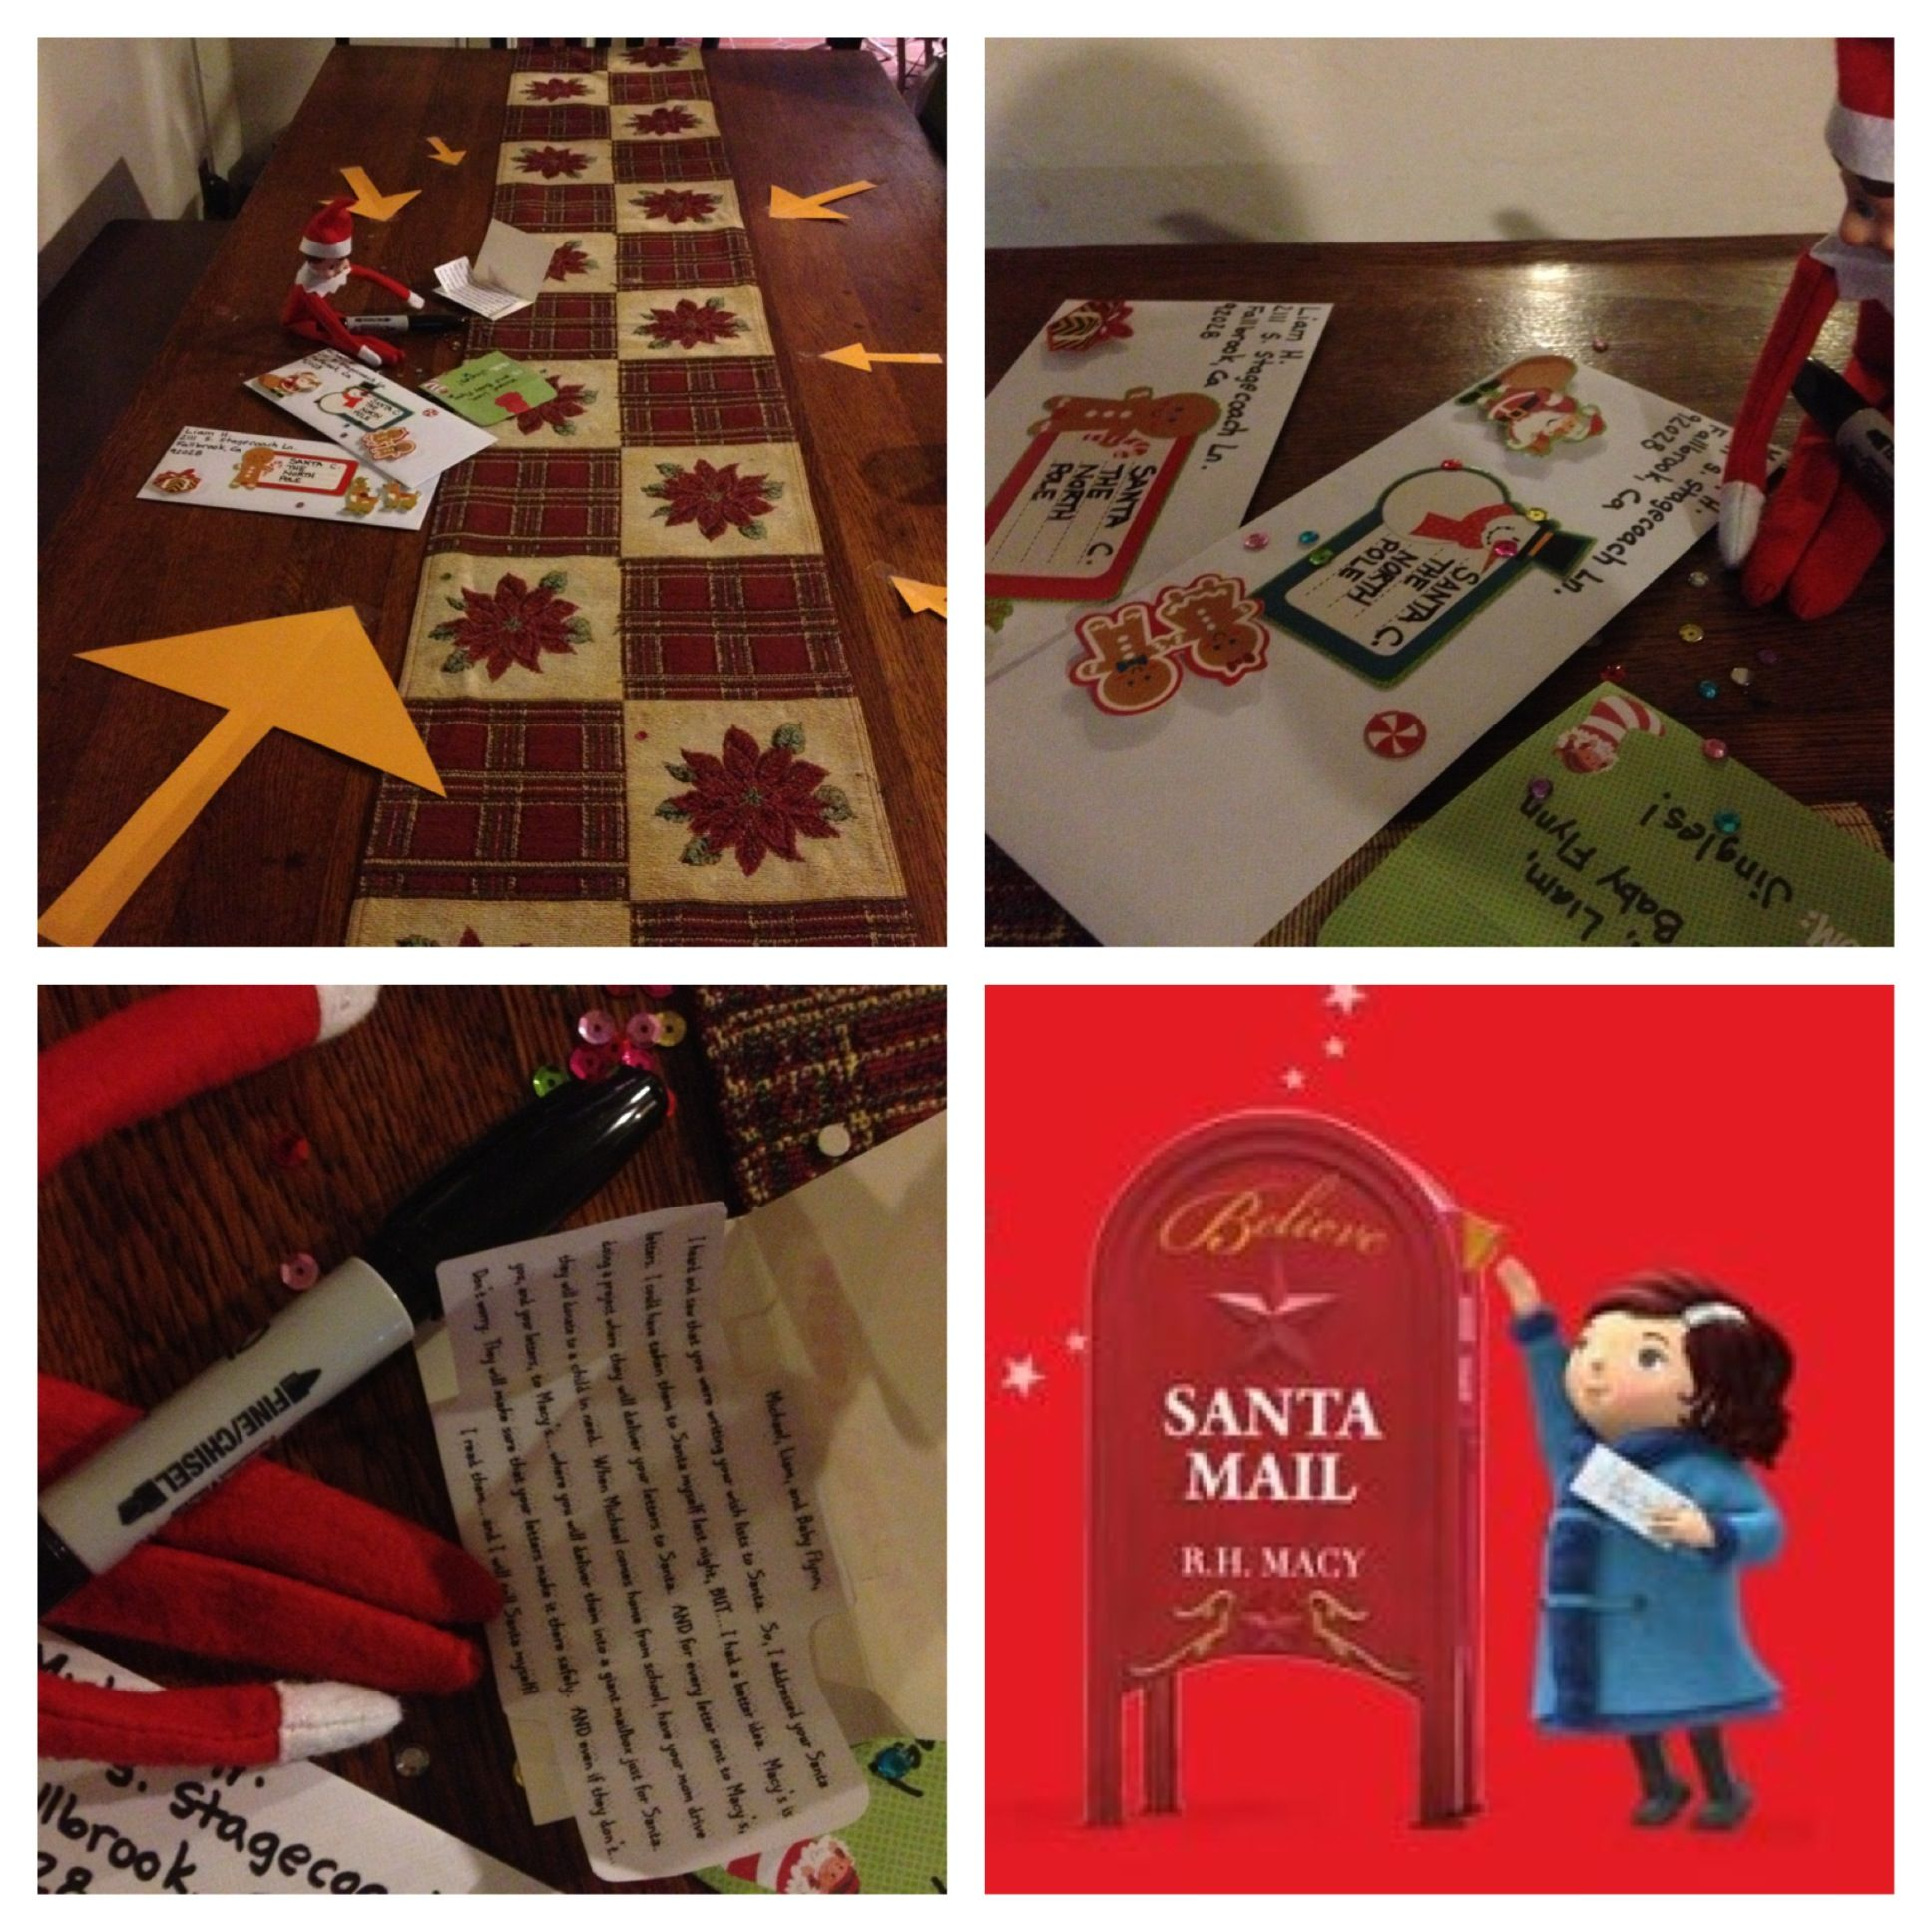 Elf on the Shelf Santa Letters Benefit MakeaWish! The